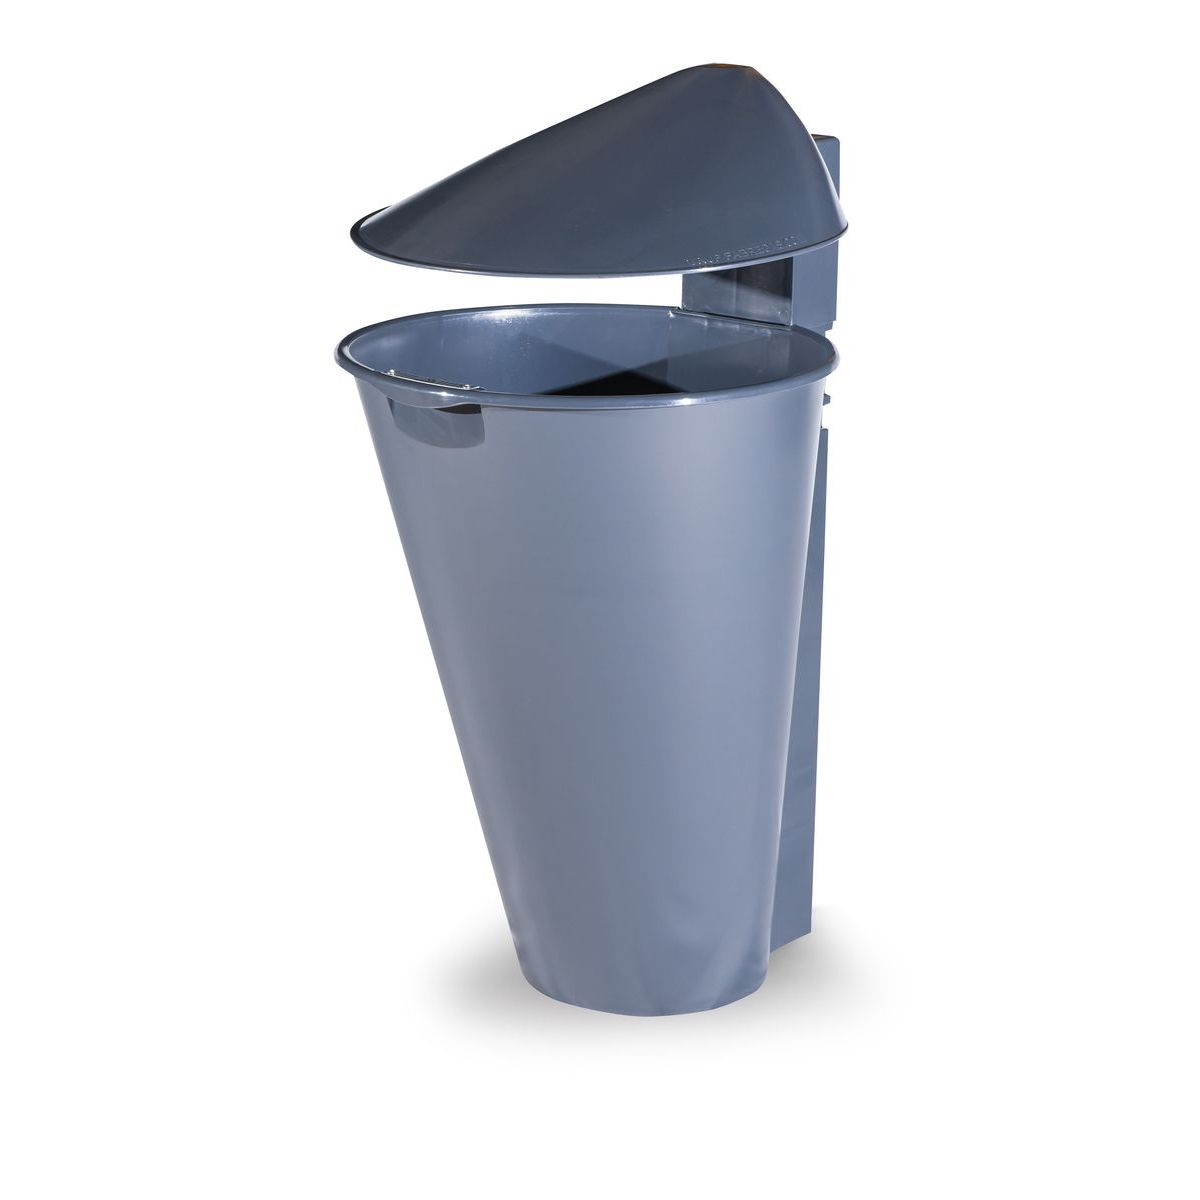 Alicante Polypropylene Grey Bin for street P-201-GRIS